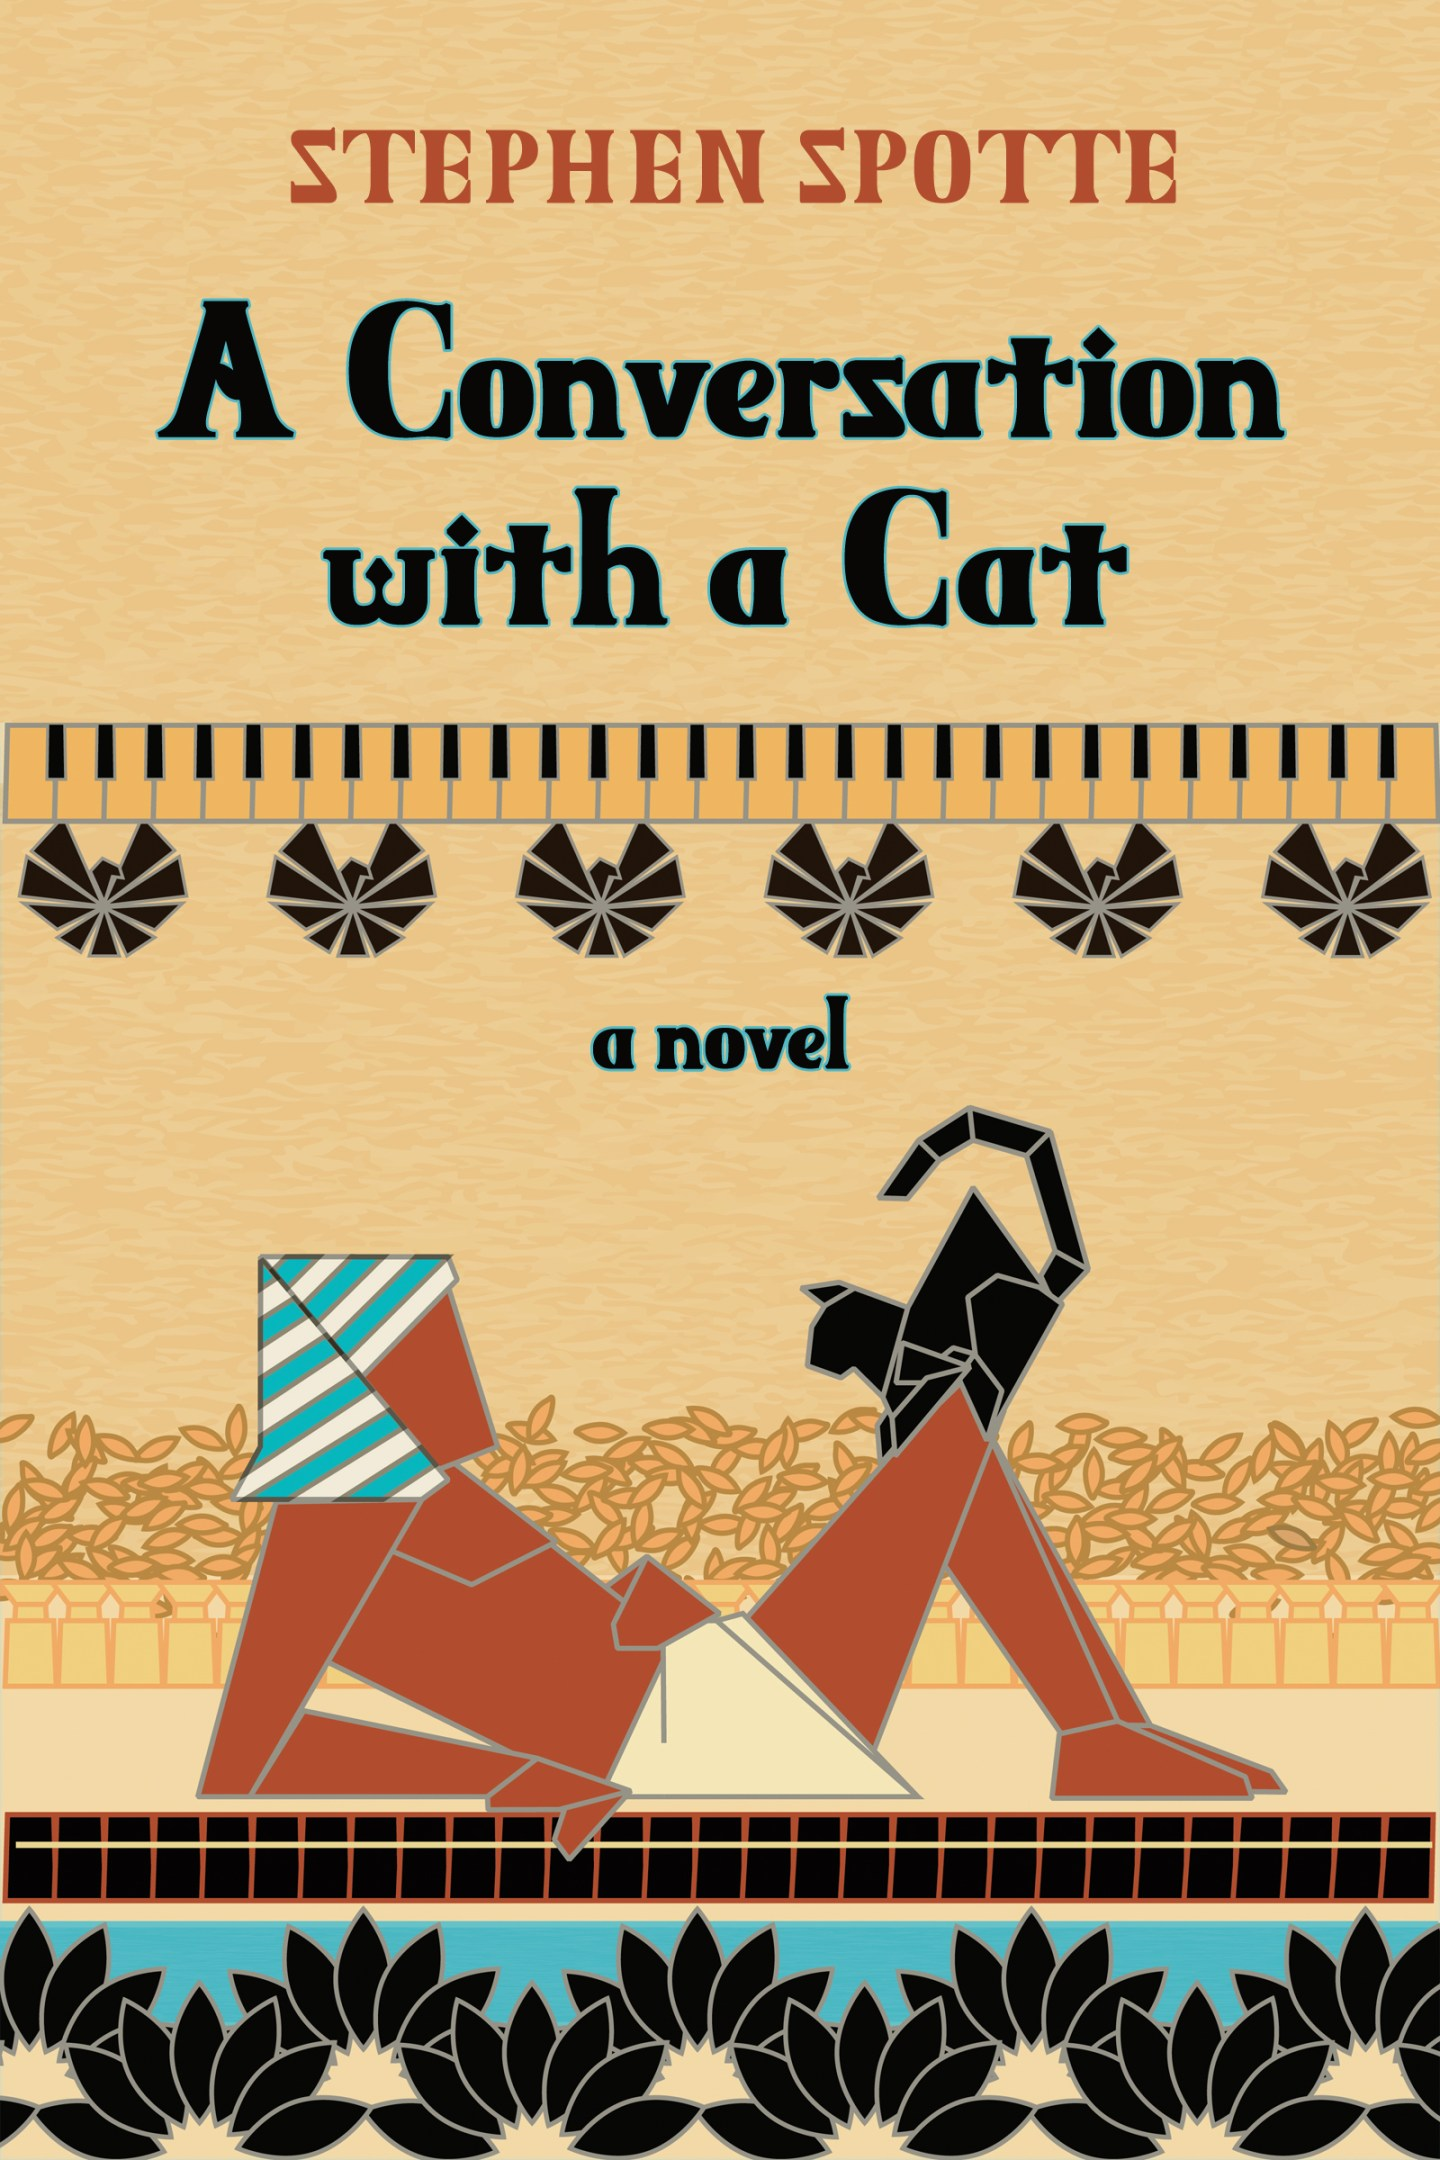 A Conversation with a Cat by Stephen Spotte (Review)